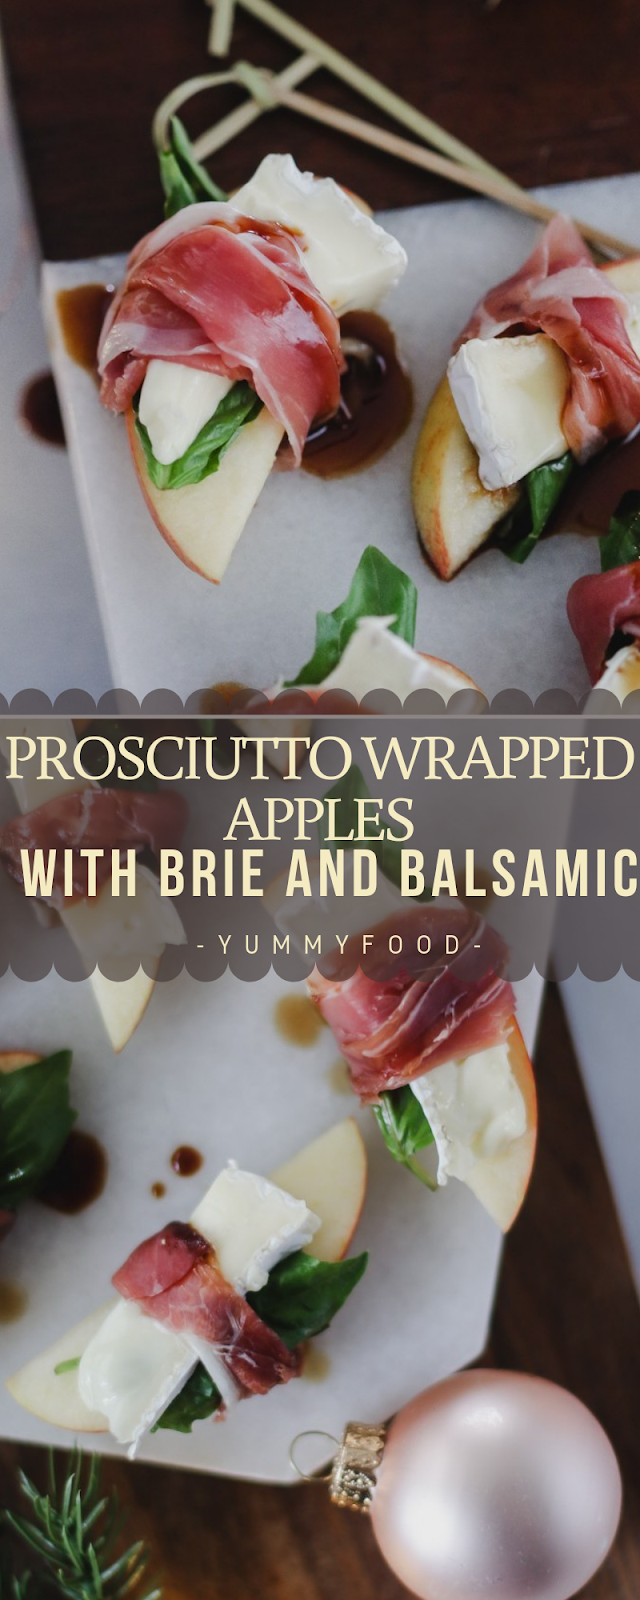 prosciutto covered apples with brie and balsamic